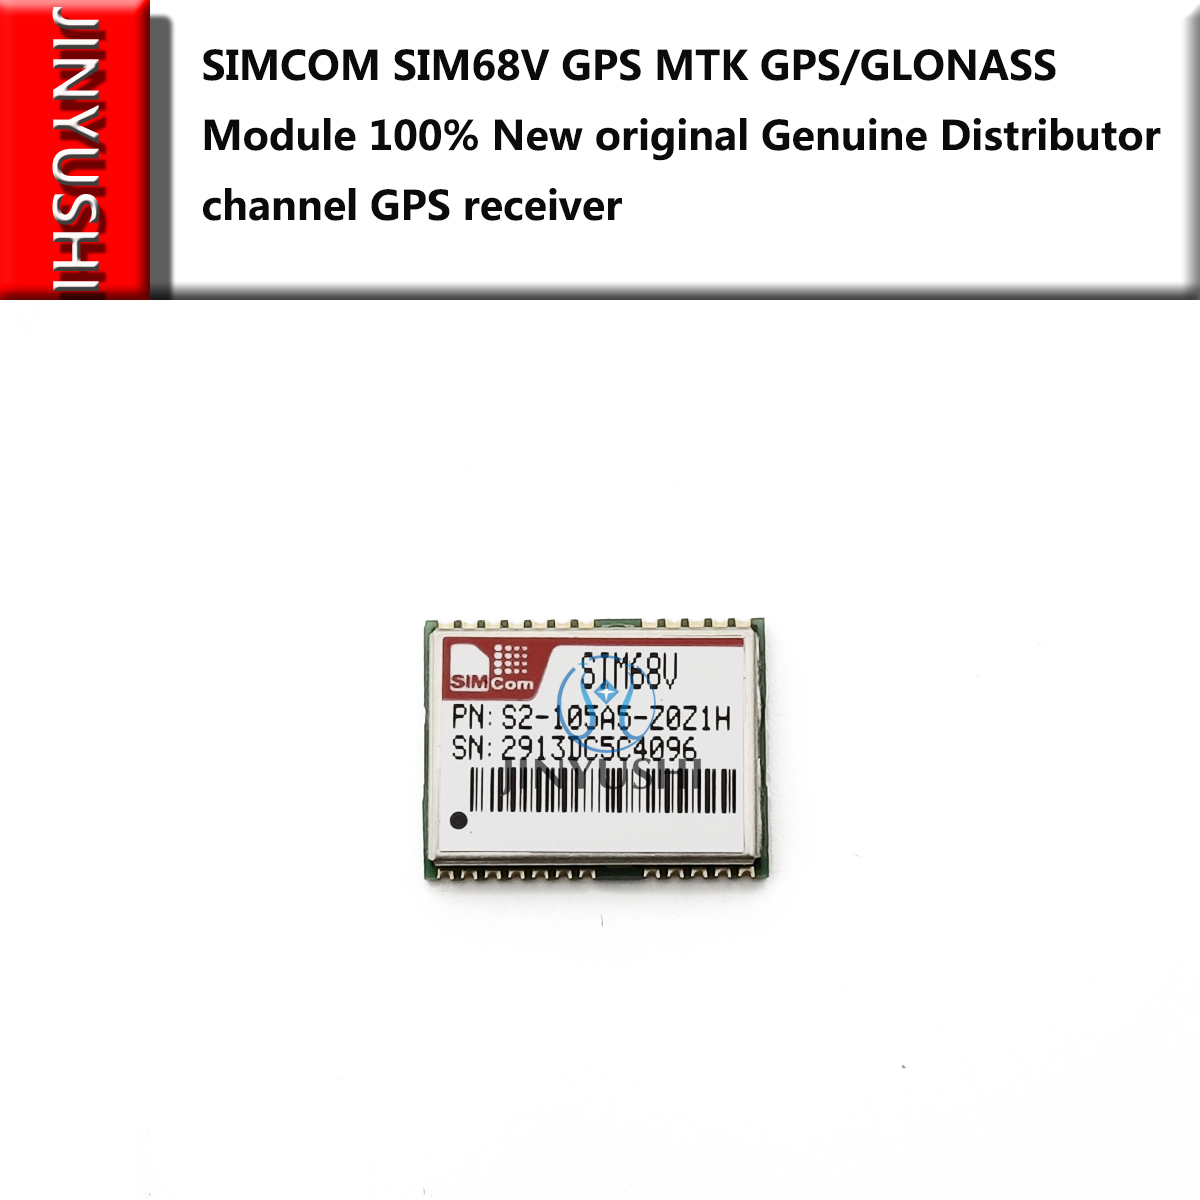 2pcs  SIM68V SIMCOM GPS MTK GPS/GLONASS Module 100% New Original Genuine Distributor Channel GPS Receiver Free Shipping In Stock